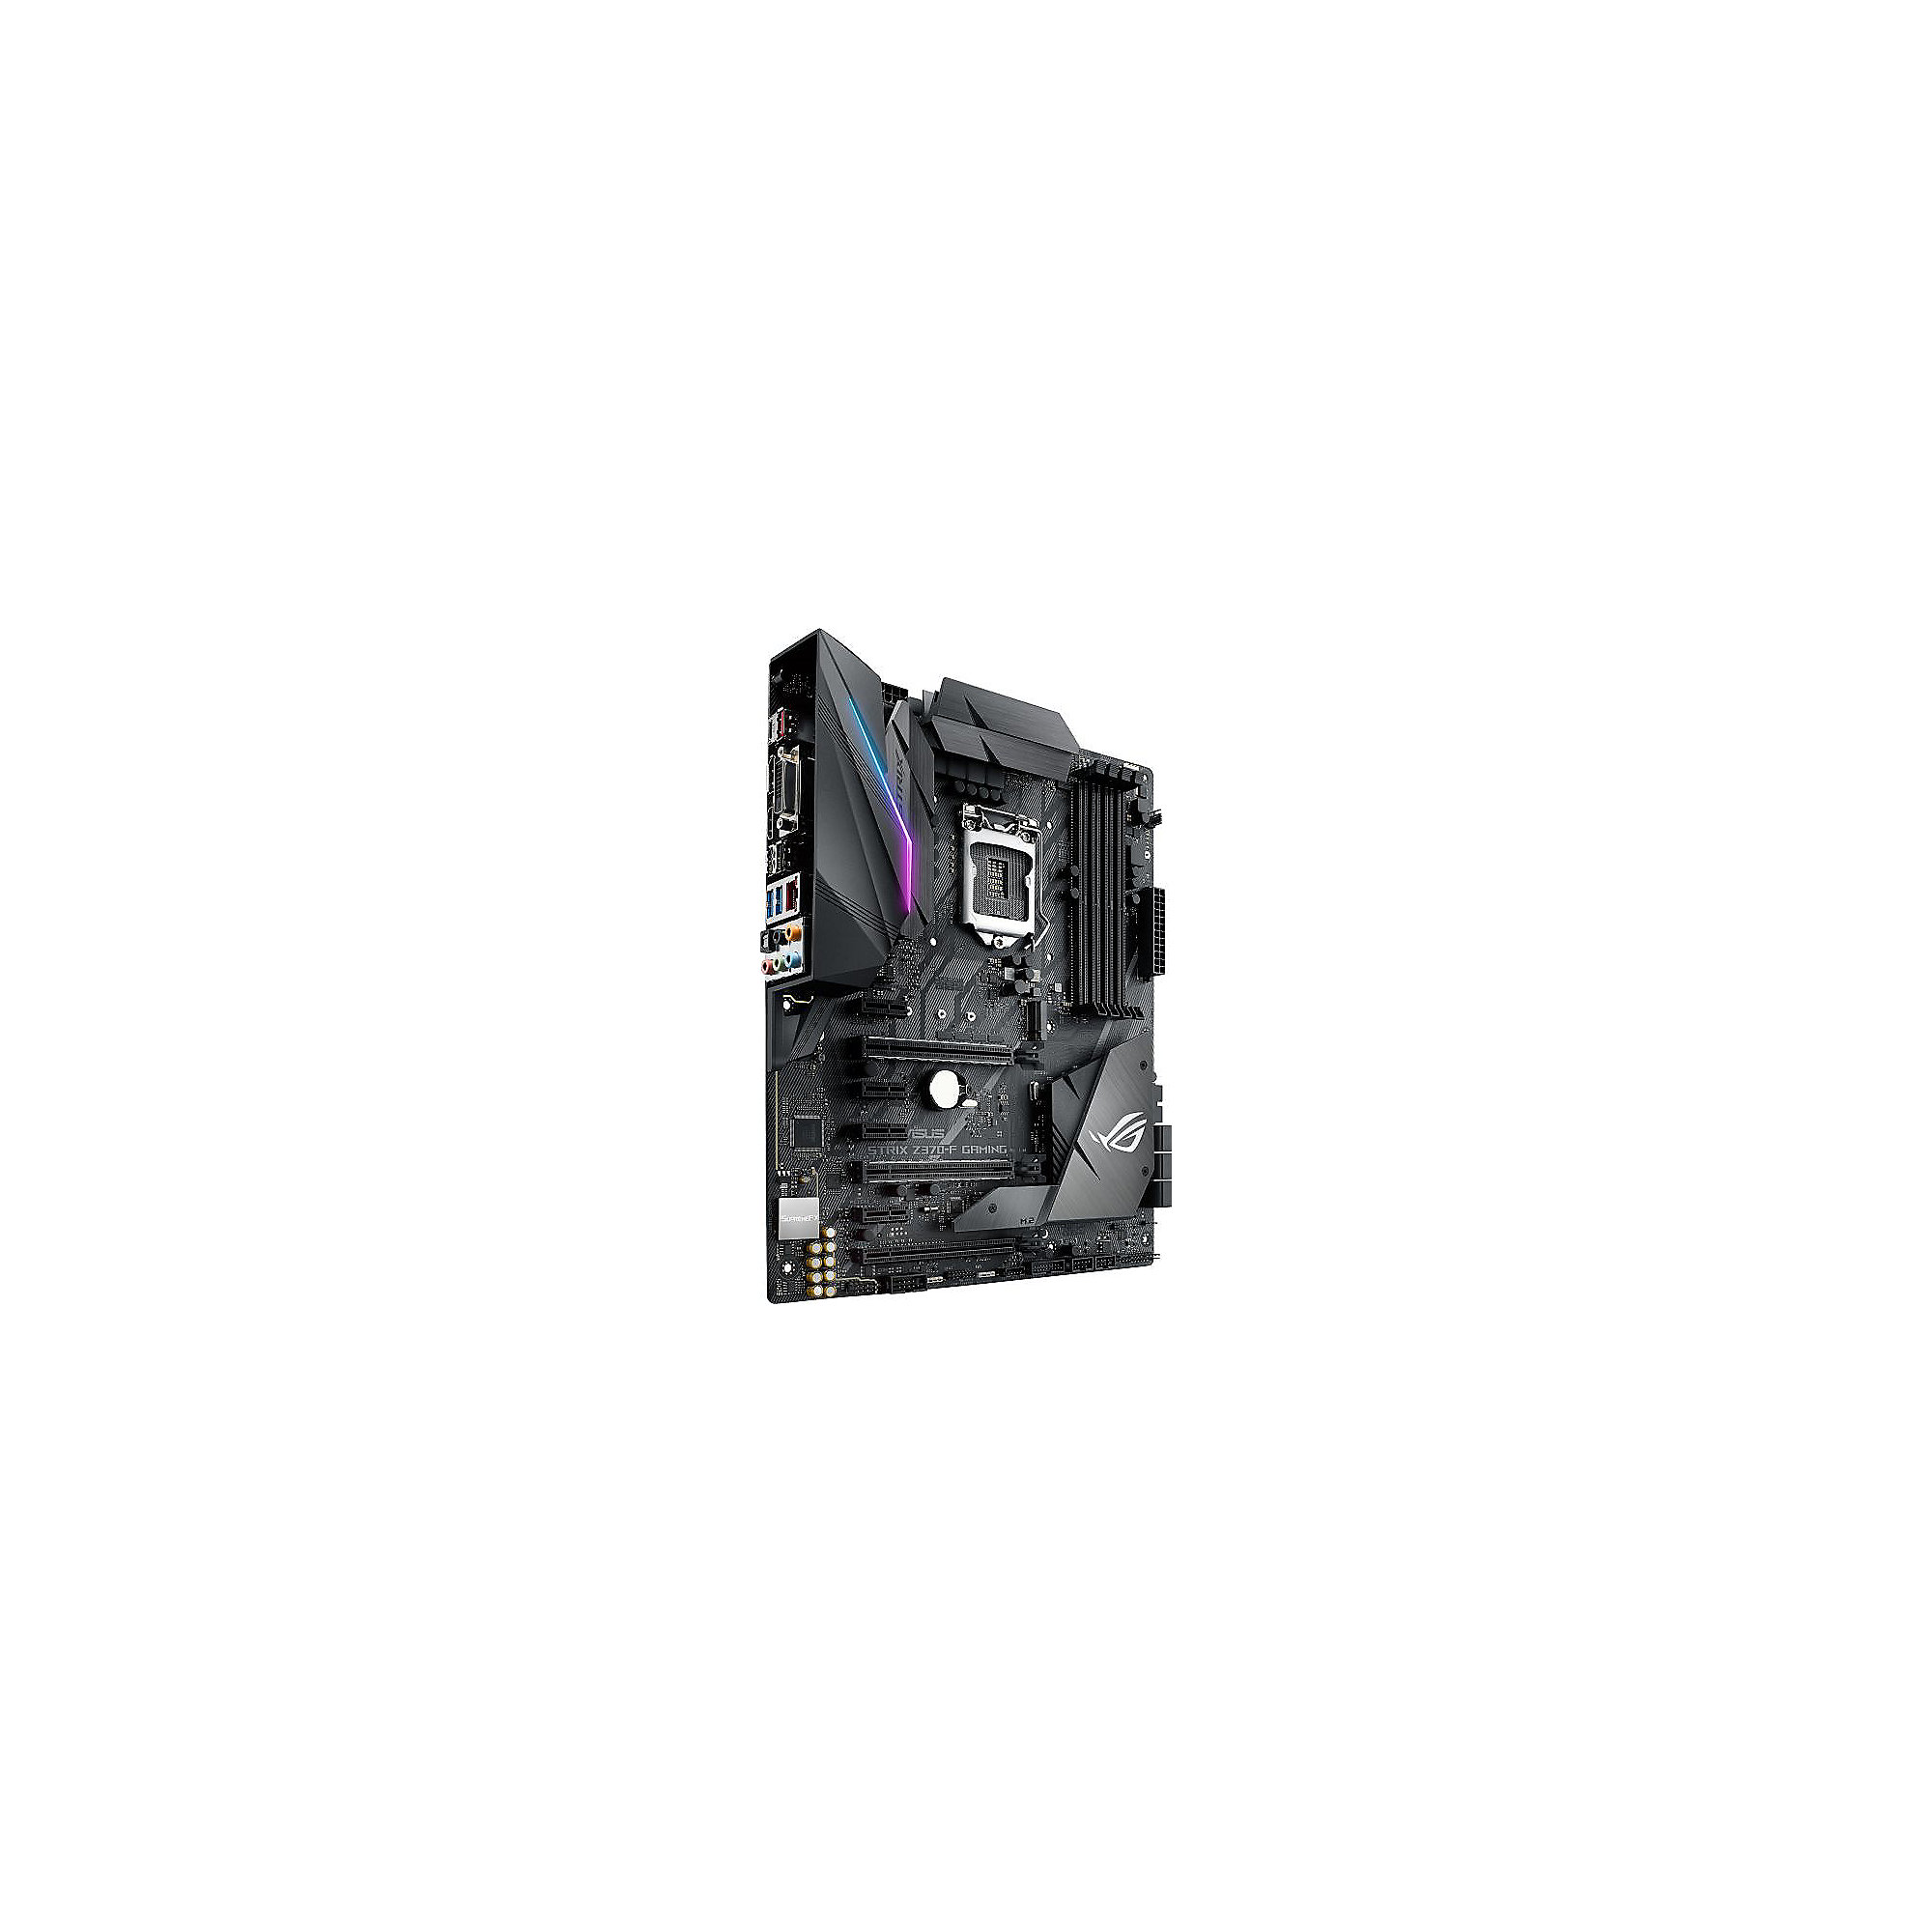 ASUS STRIX Z370-F GAMING ATX Mainboard 1151 DP/HDMI/DVI/M.2/USB3.1